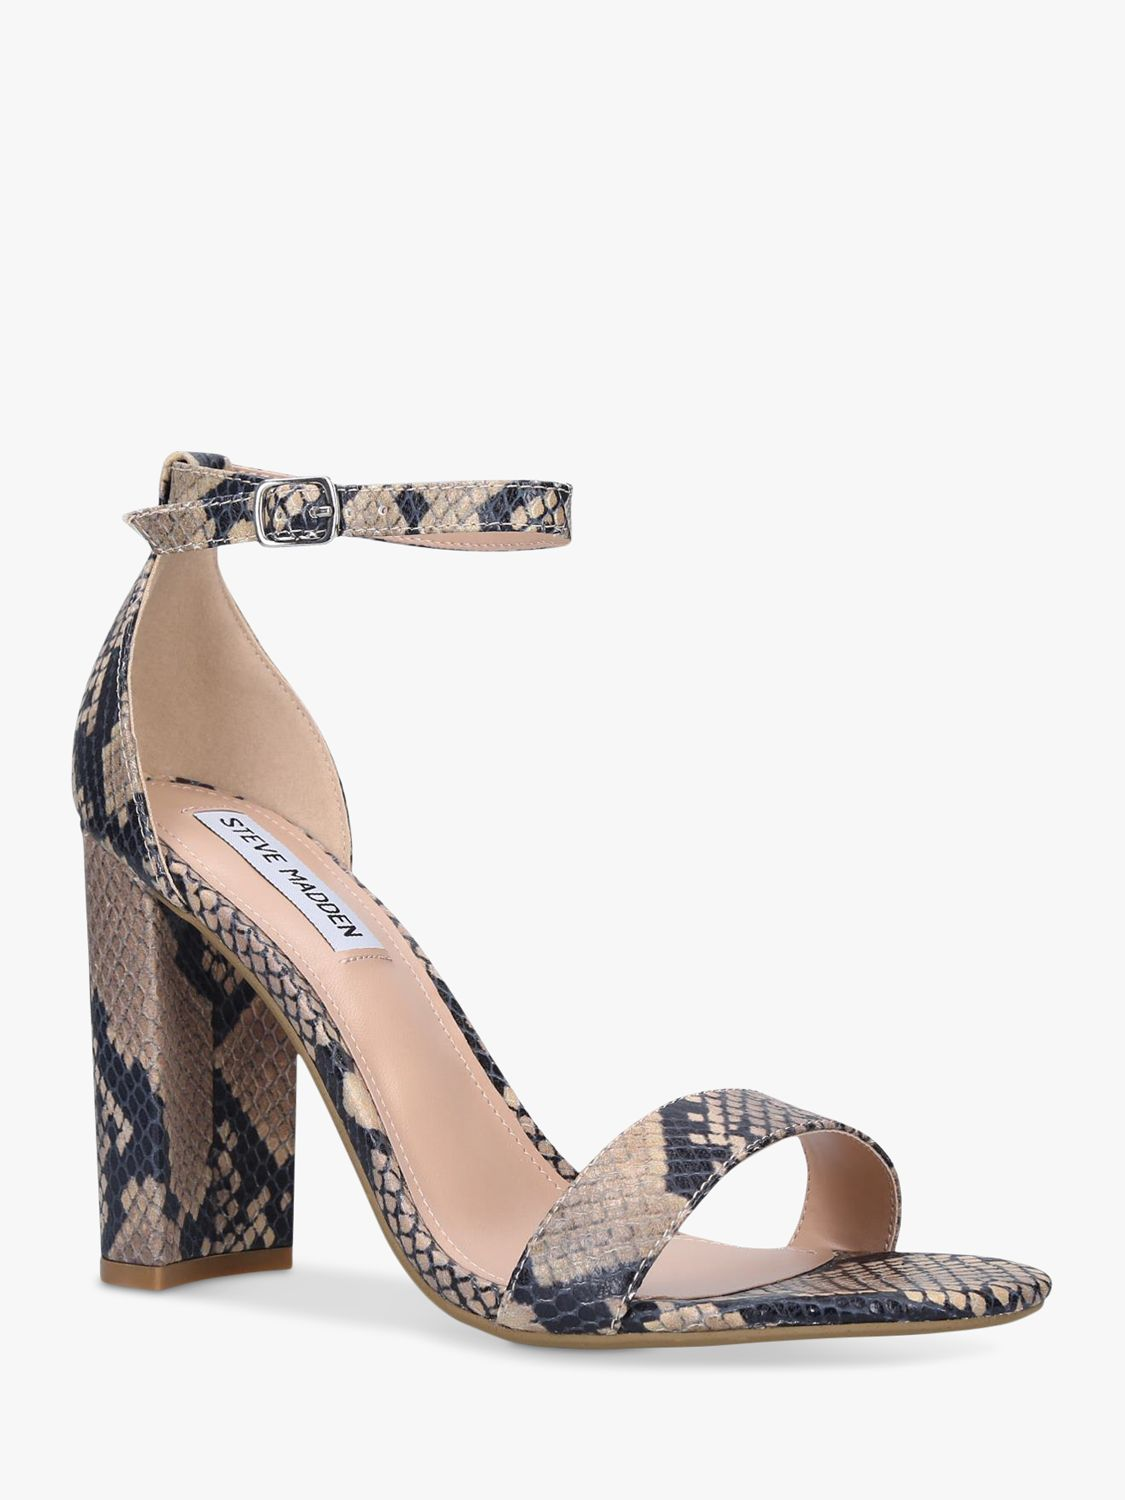 Steve Madden Steve Madden Carrson Two Part Suede Block Heel Sandals, Natural/Multi